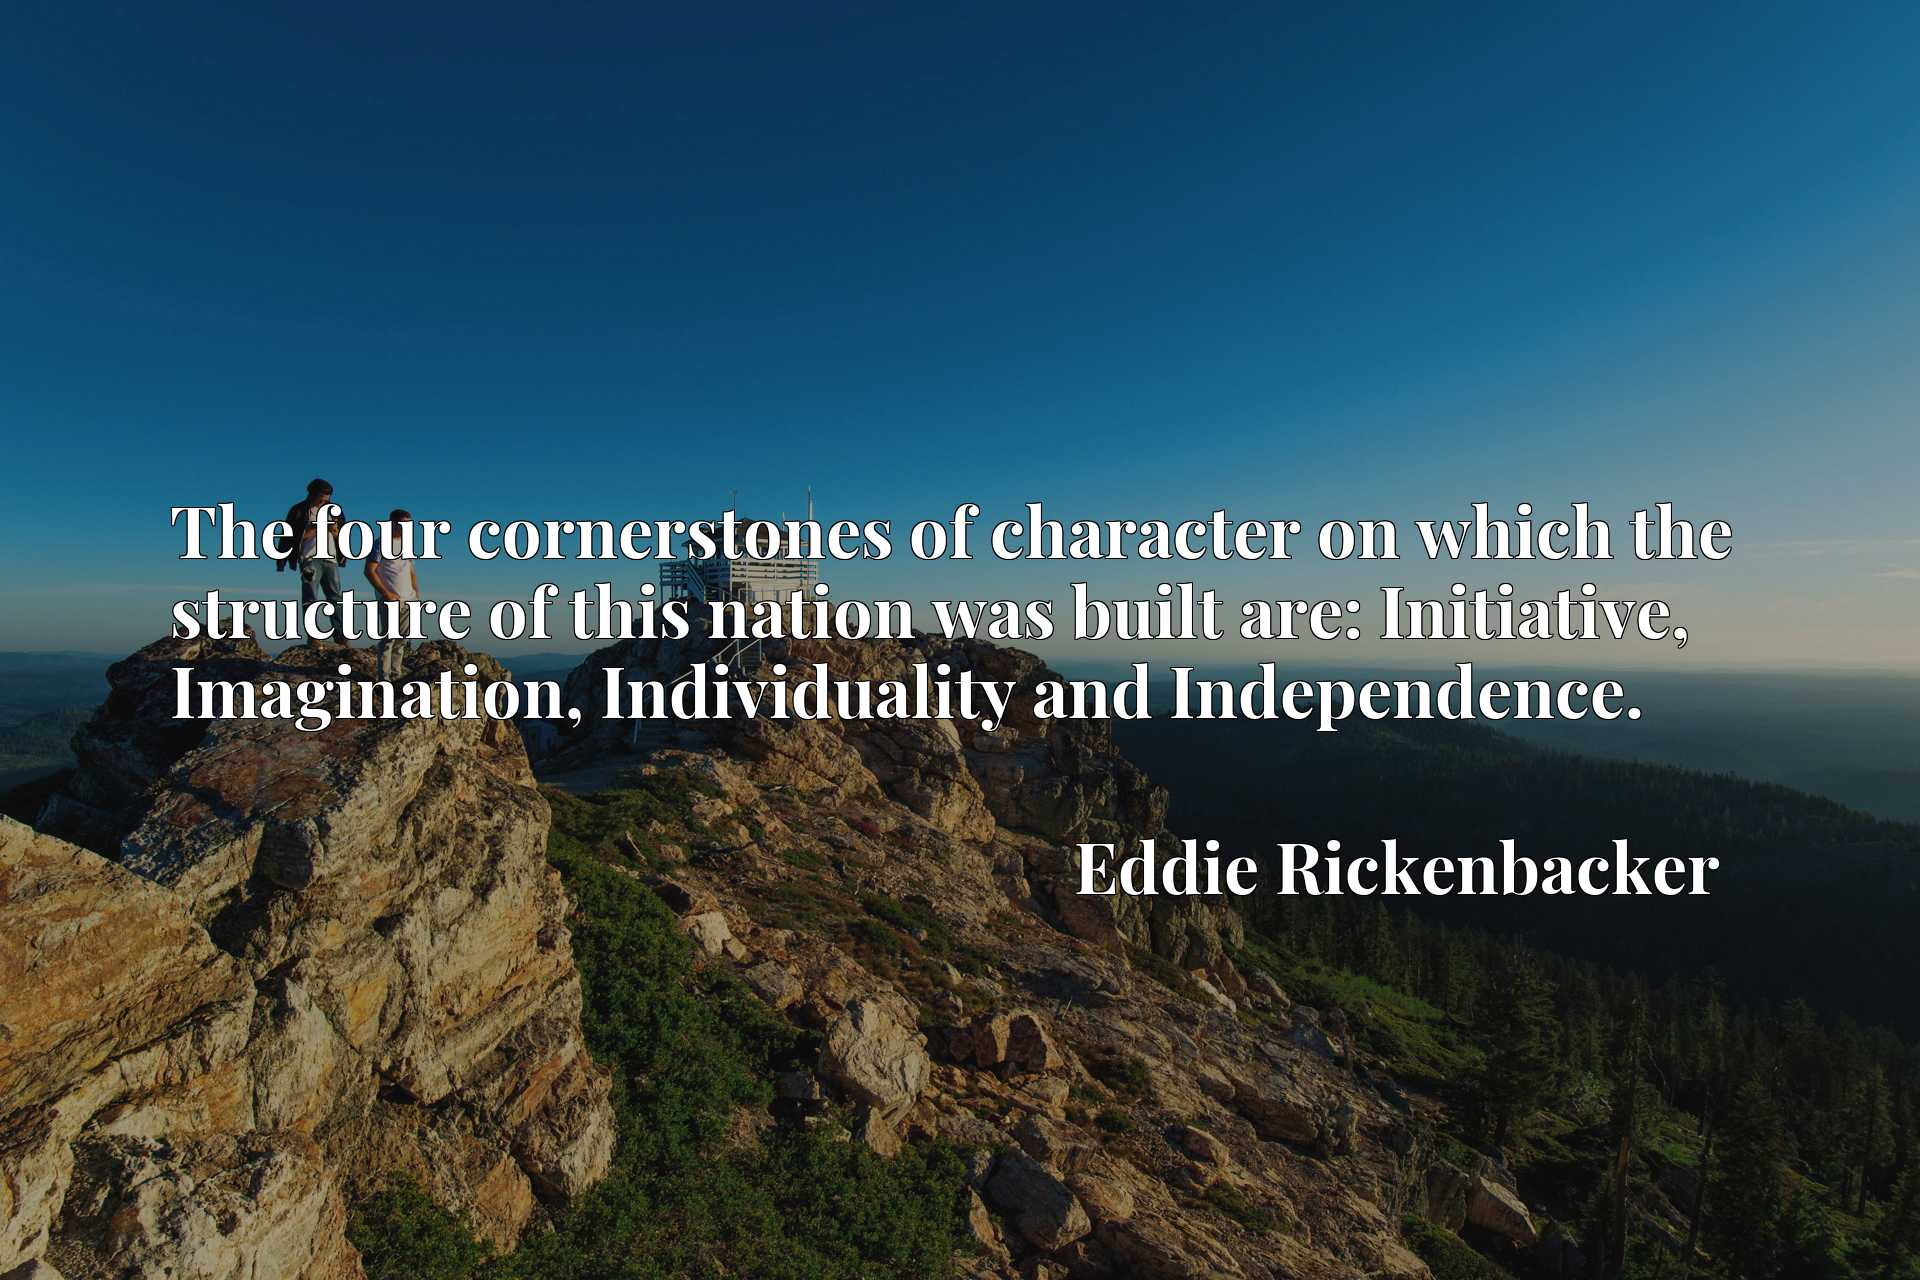 Quote Picture :The four cornerstones of character on which the structure of this nation was built are: Initiative, Imagination, Individuality and Independence.